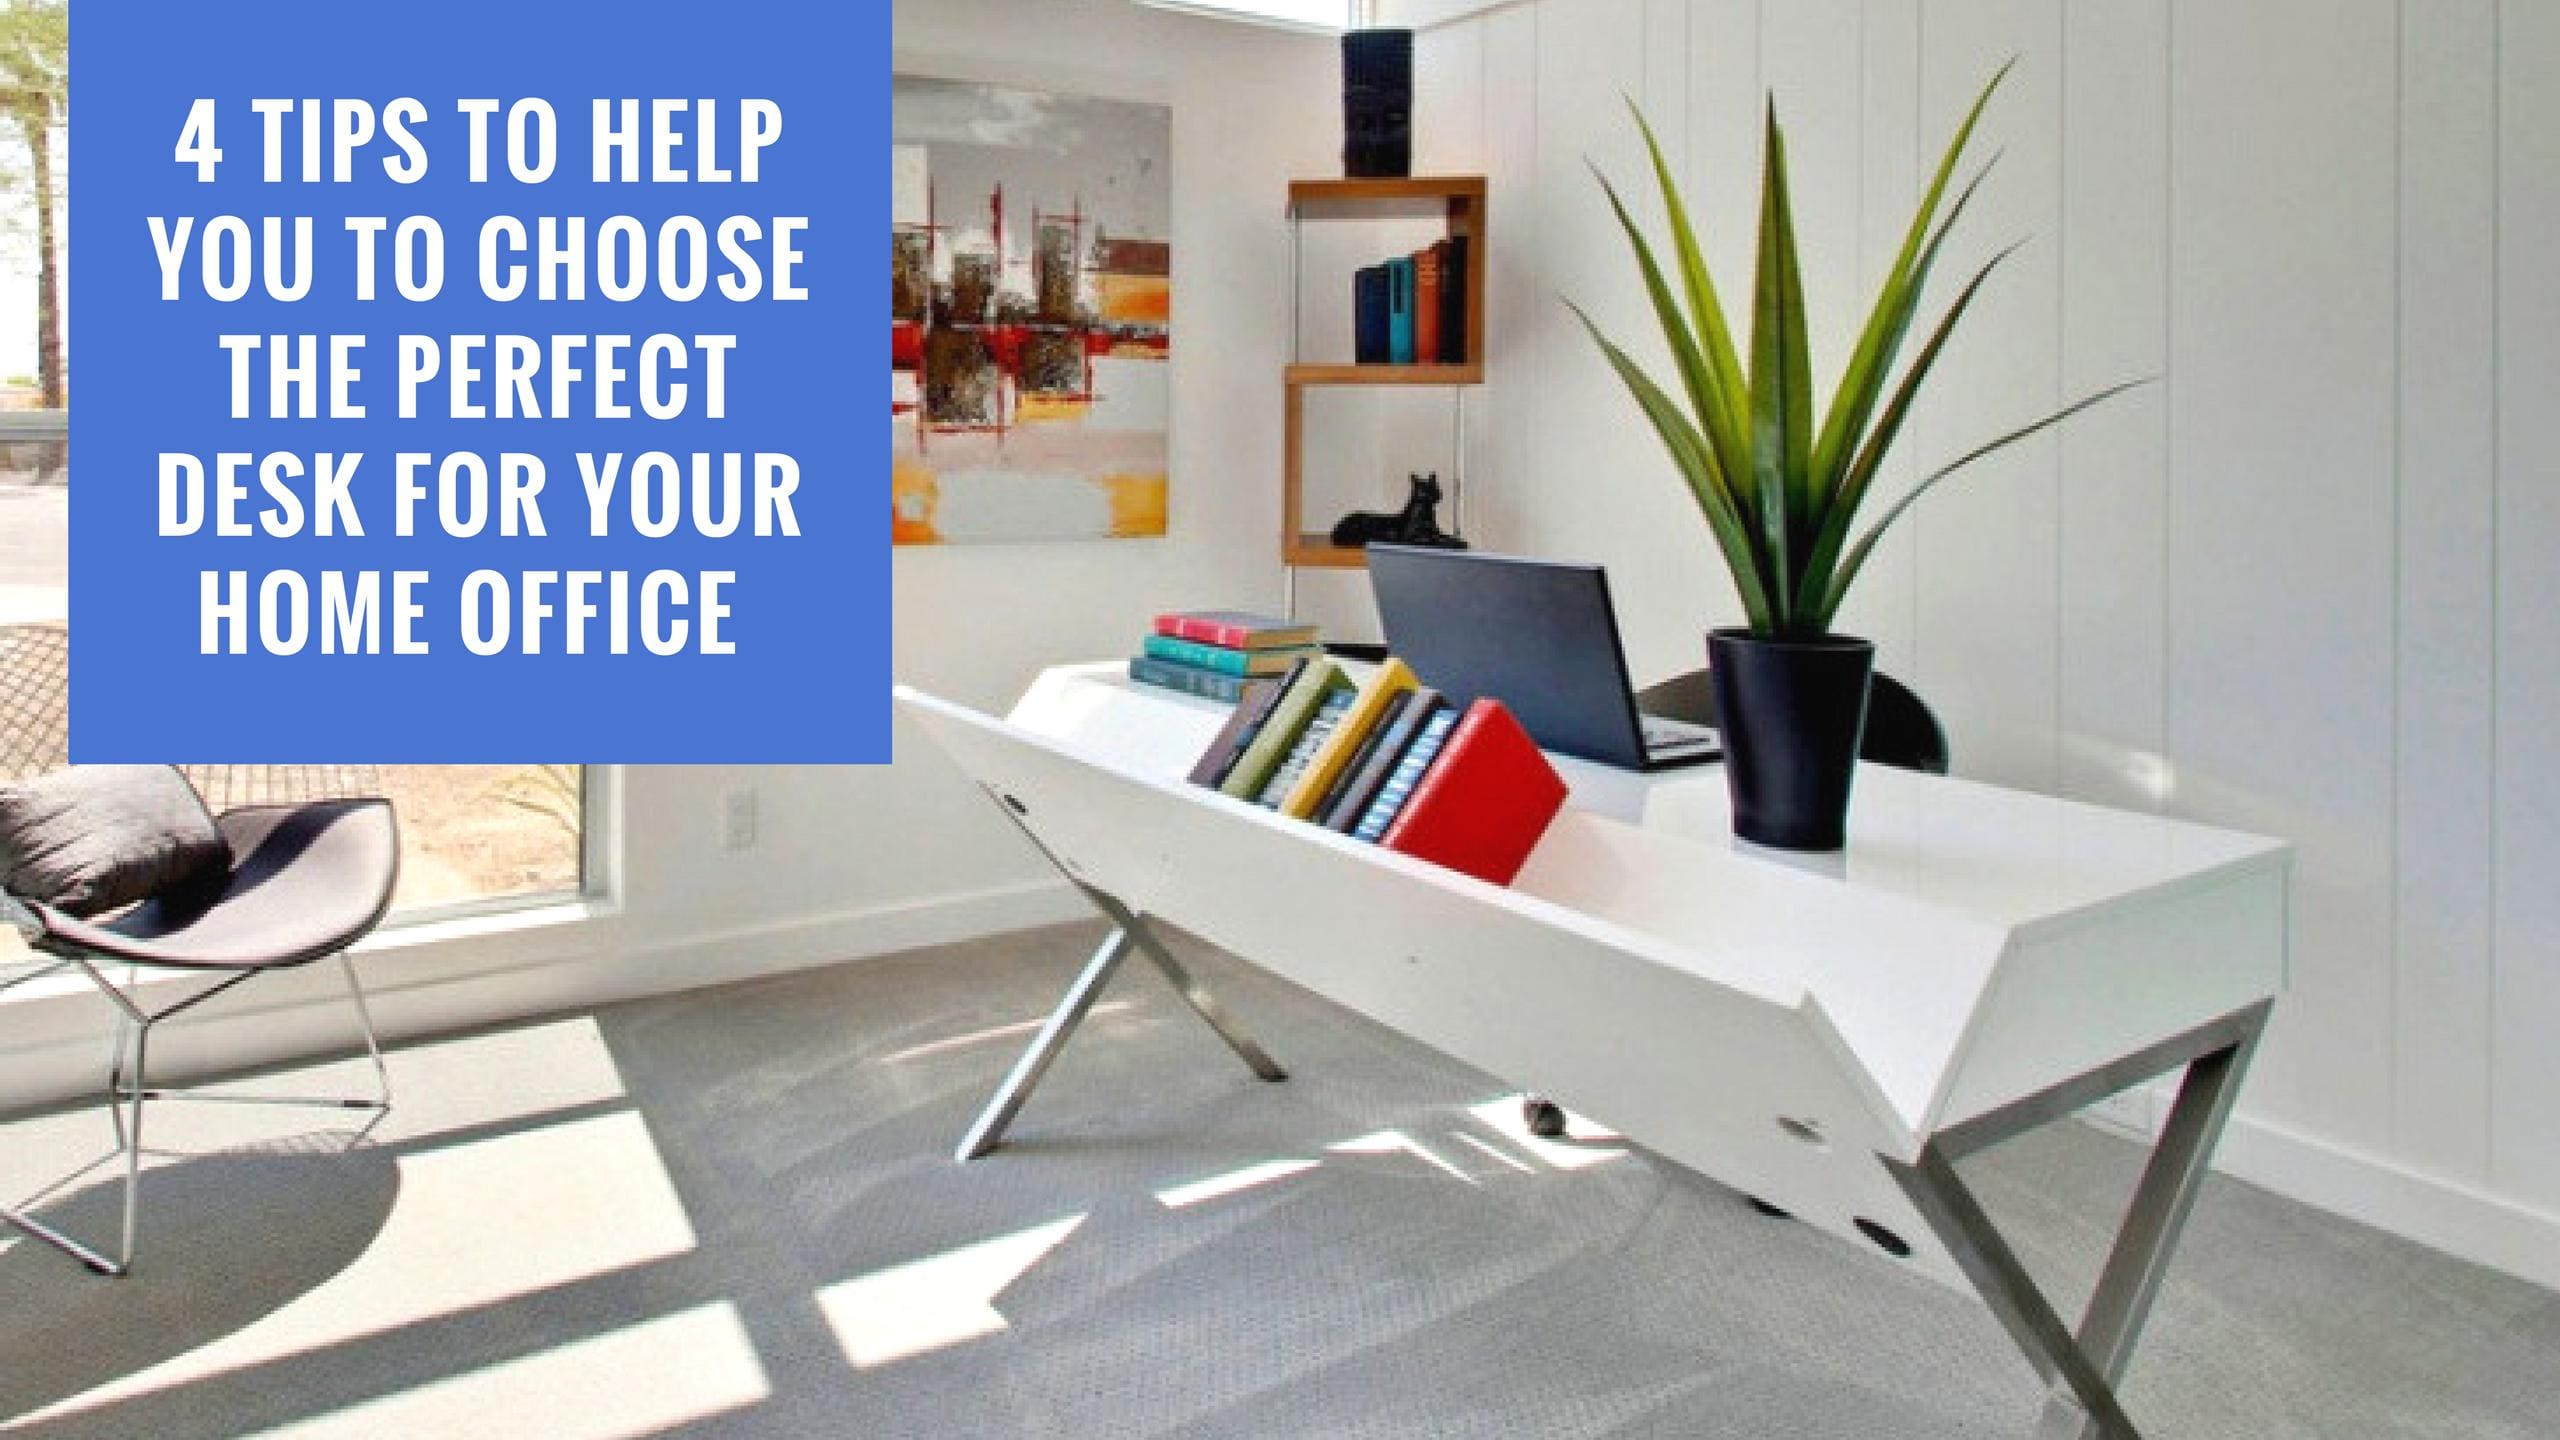 choose home office decoration tips to help you choose the perfect desk for your home office direct furniture